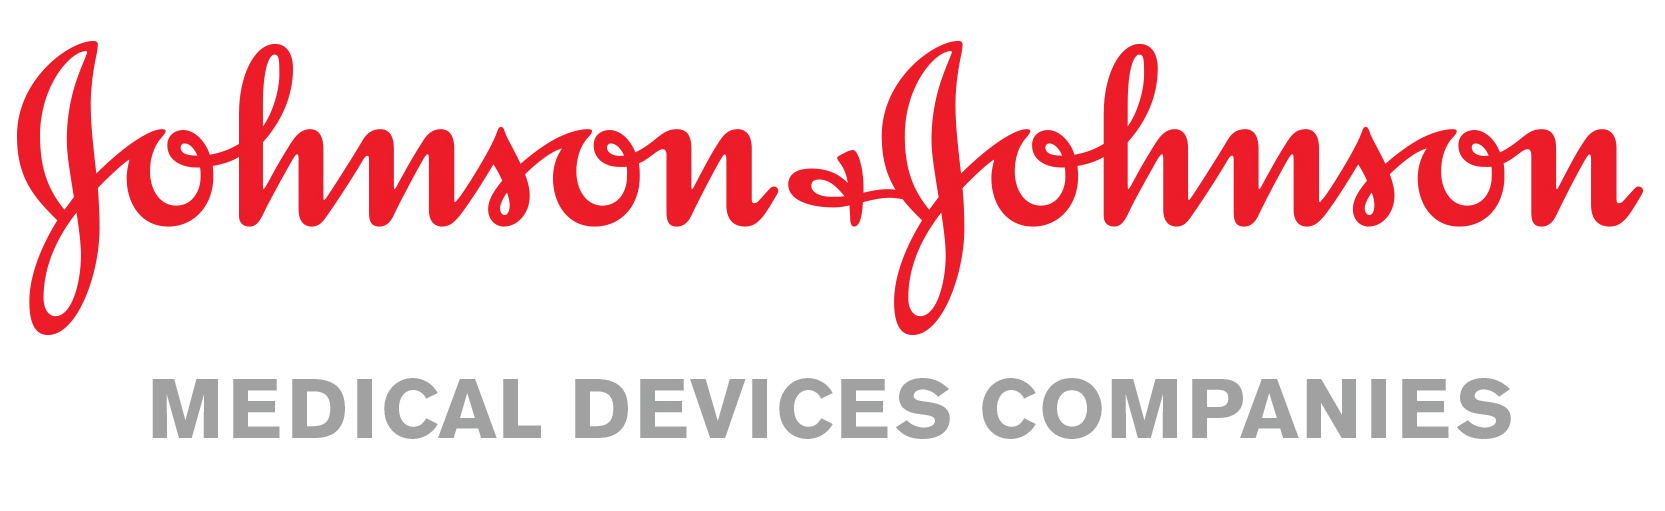 Johnson & Johnson | The MedTech Forum, the leading MedTech conference in  Europe